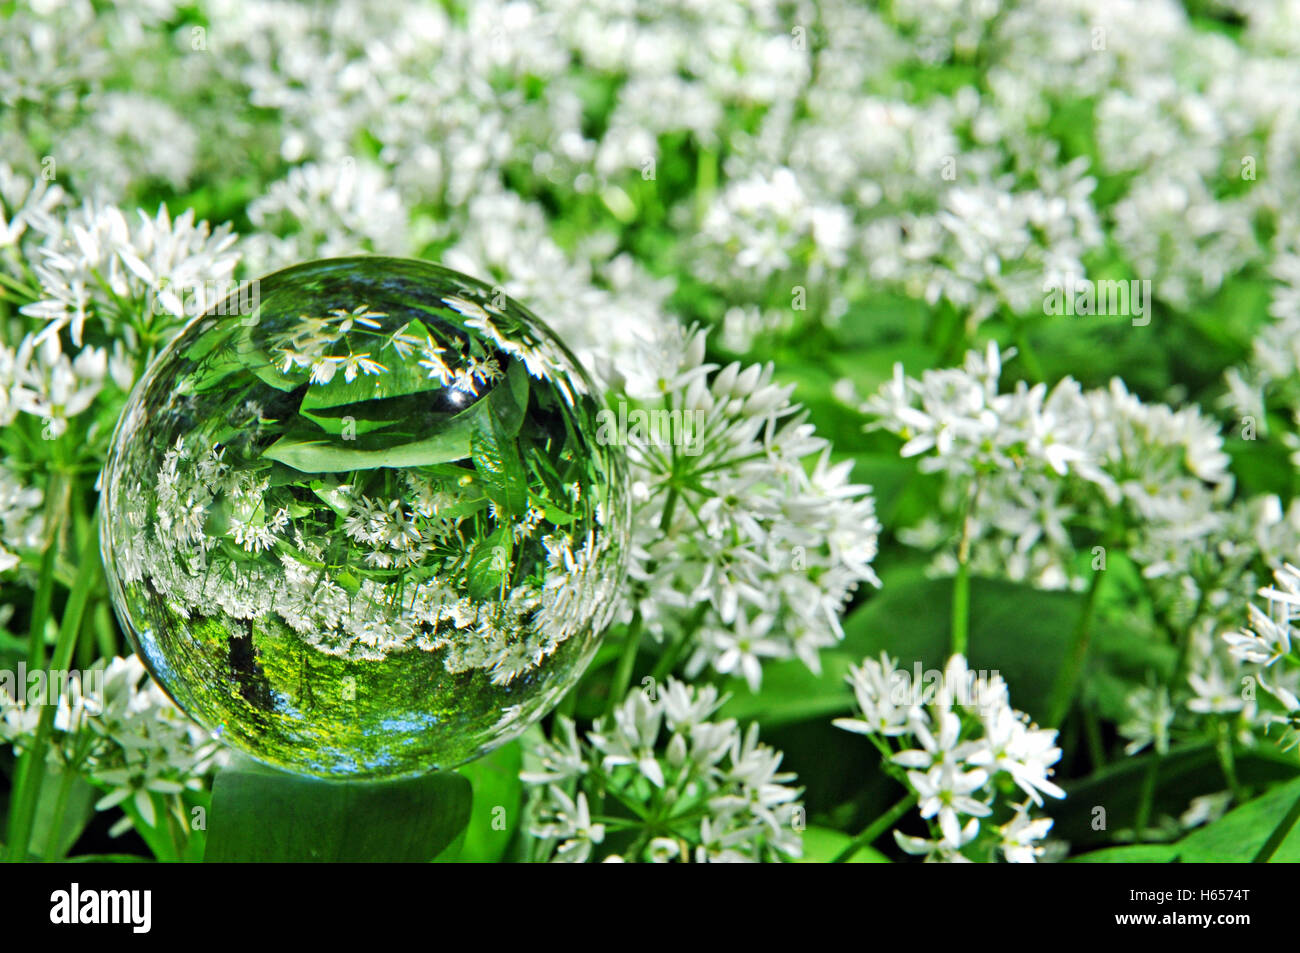 Looking through a Crystal ball in a wild garlic woods in RSPB Garston Woods, Dean lane, Sixpenny Handley Nr Shaftesbury. - Stock Image